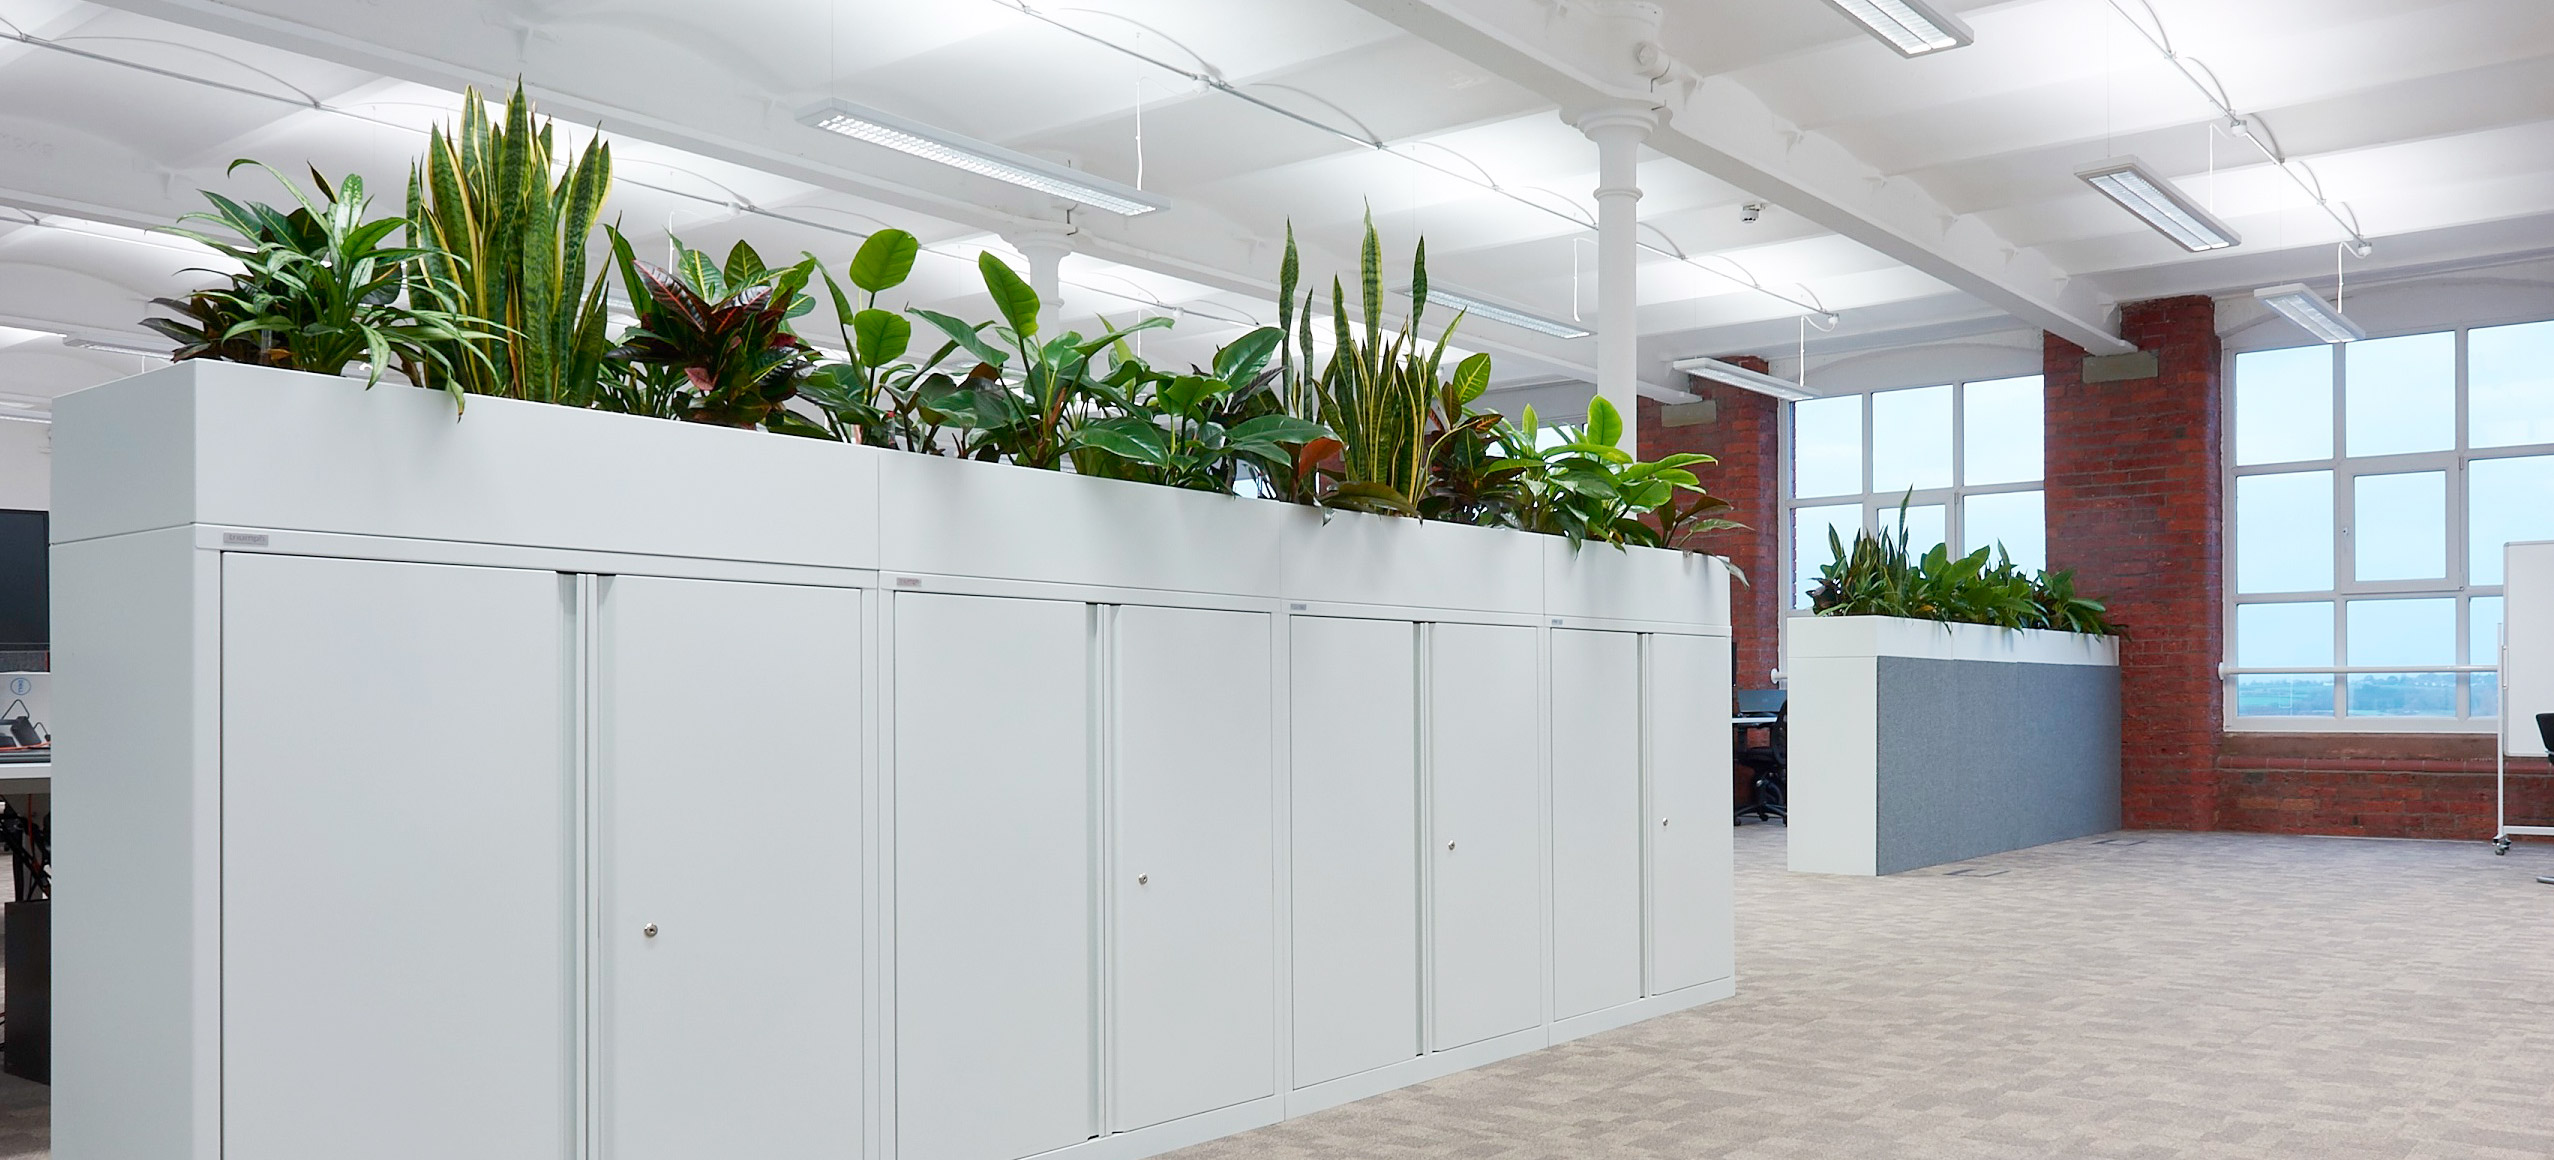 Storage units with integrated plants